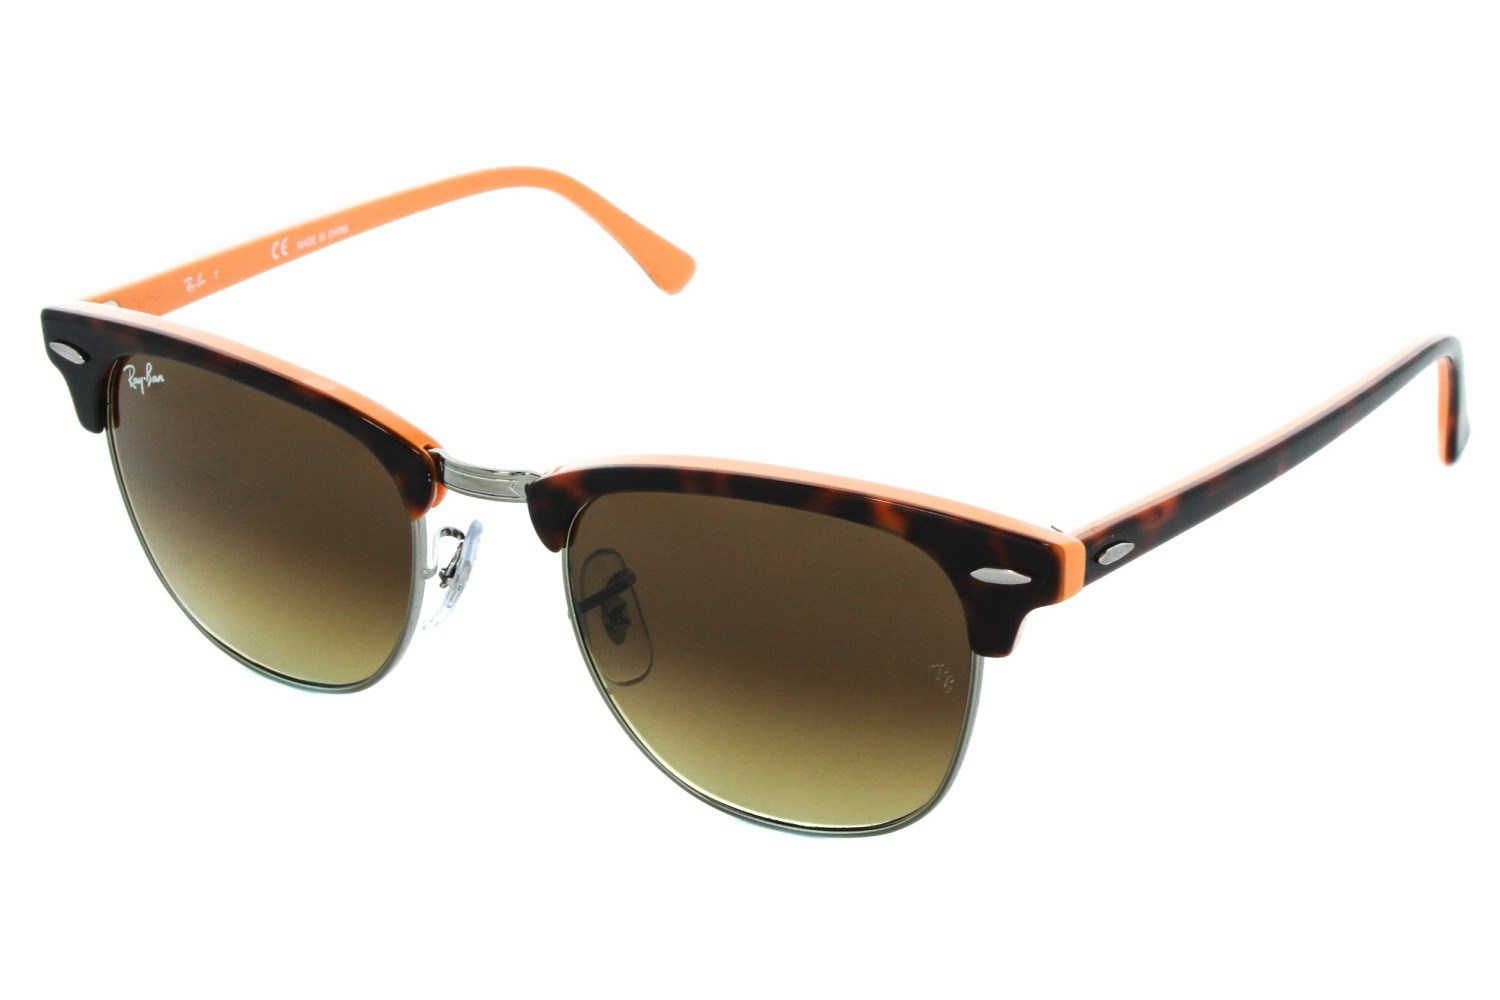 best online sunglasses store  best ray-ban online